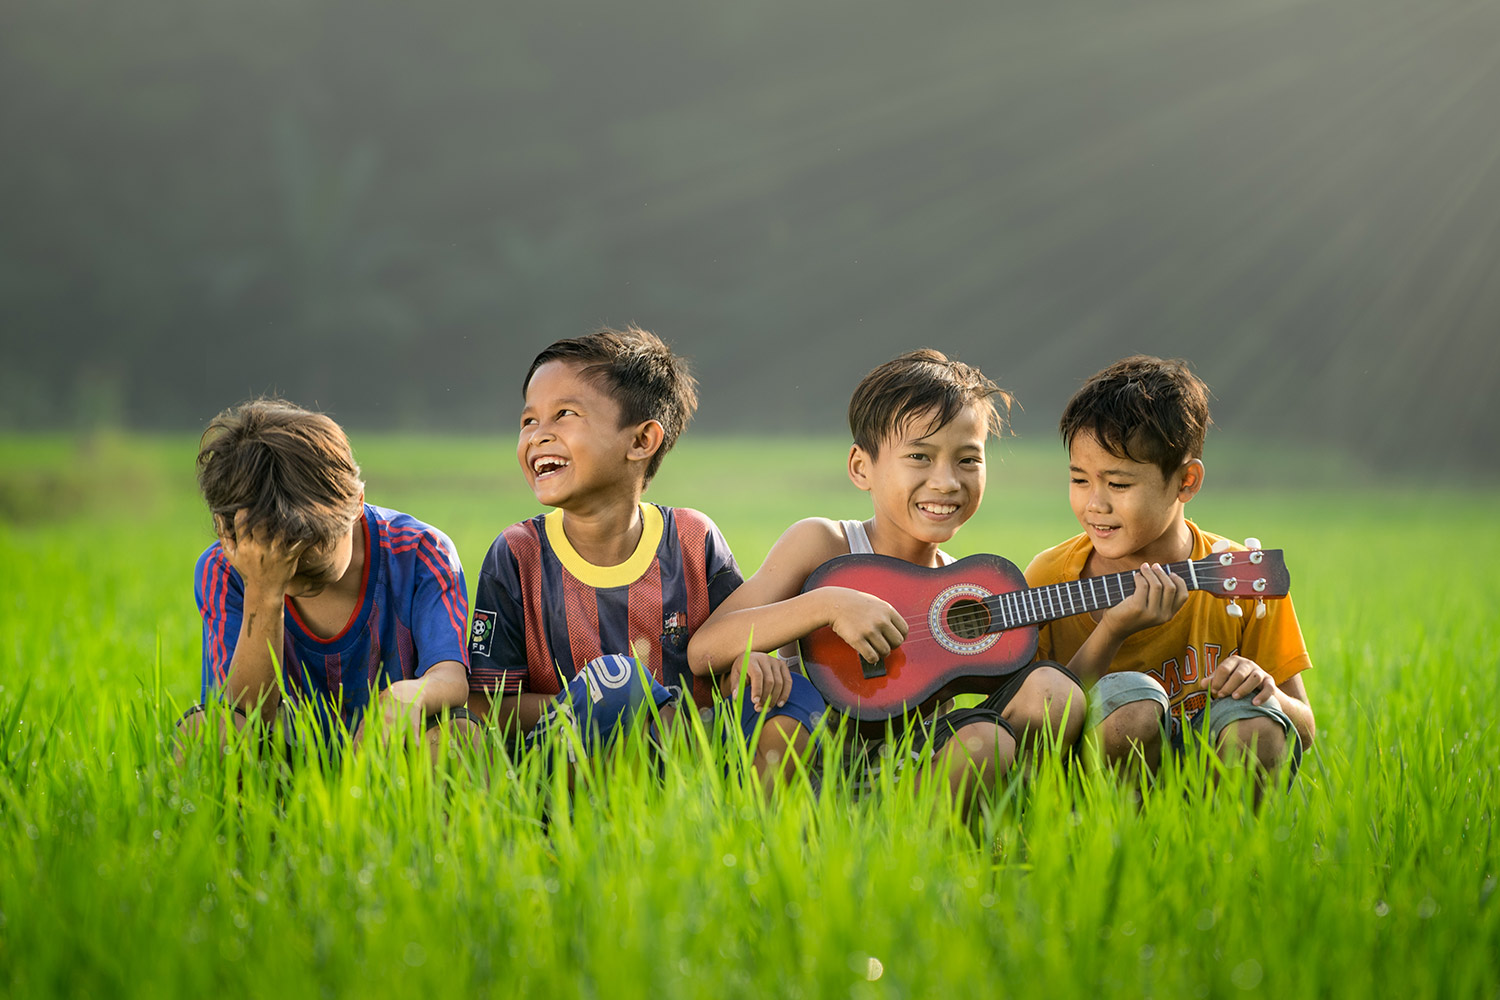 Music connects us to community and cultural diversity. -